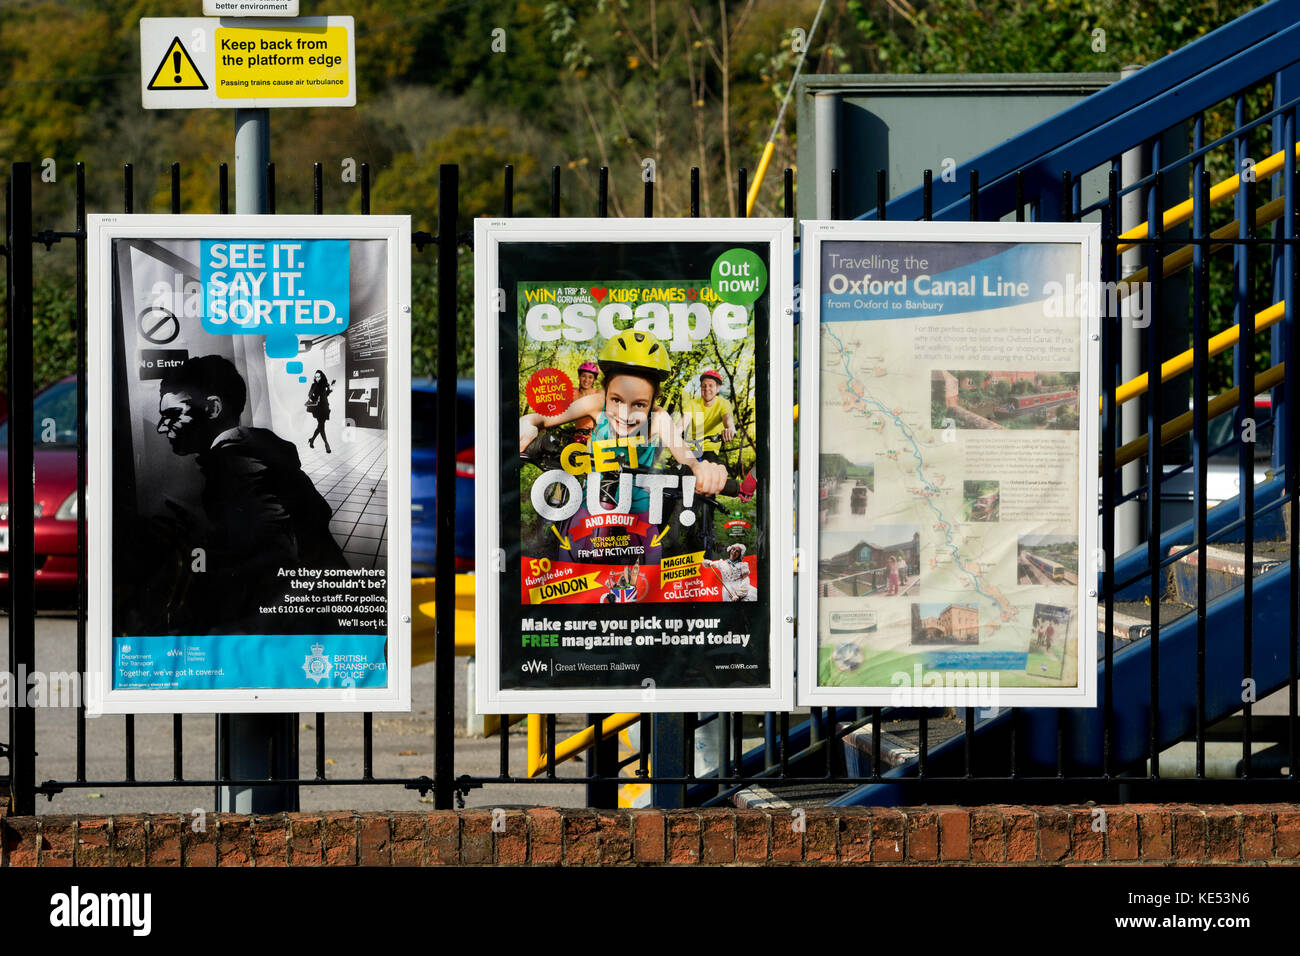 Posters at Heyford railway station, Oxfordshire, England, UK - Stock Image